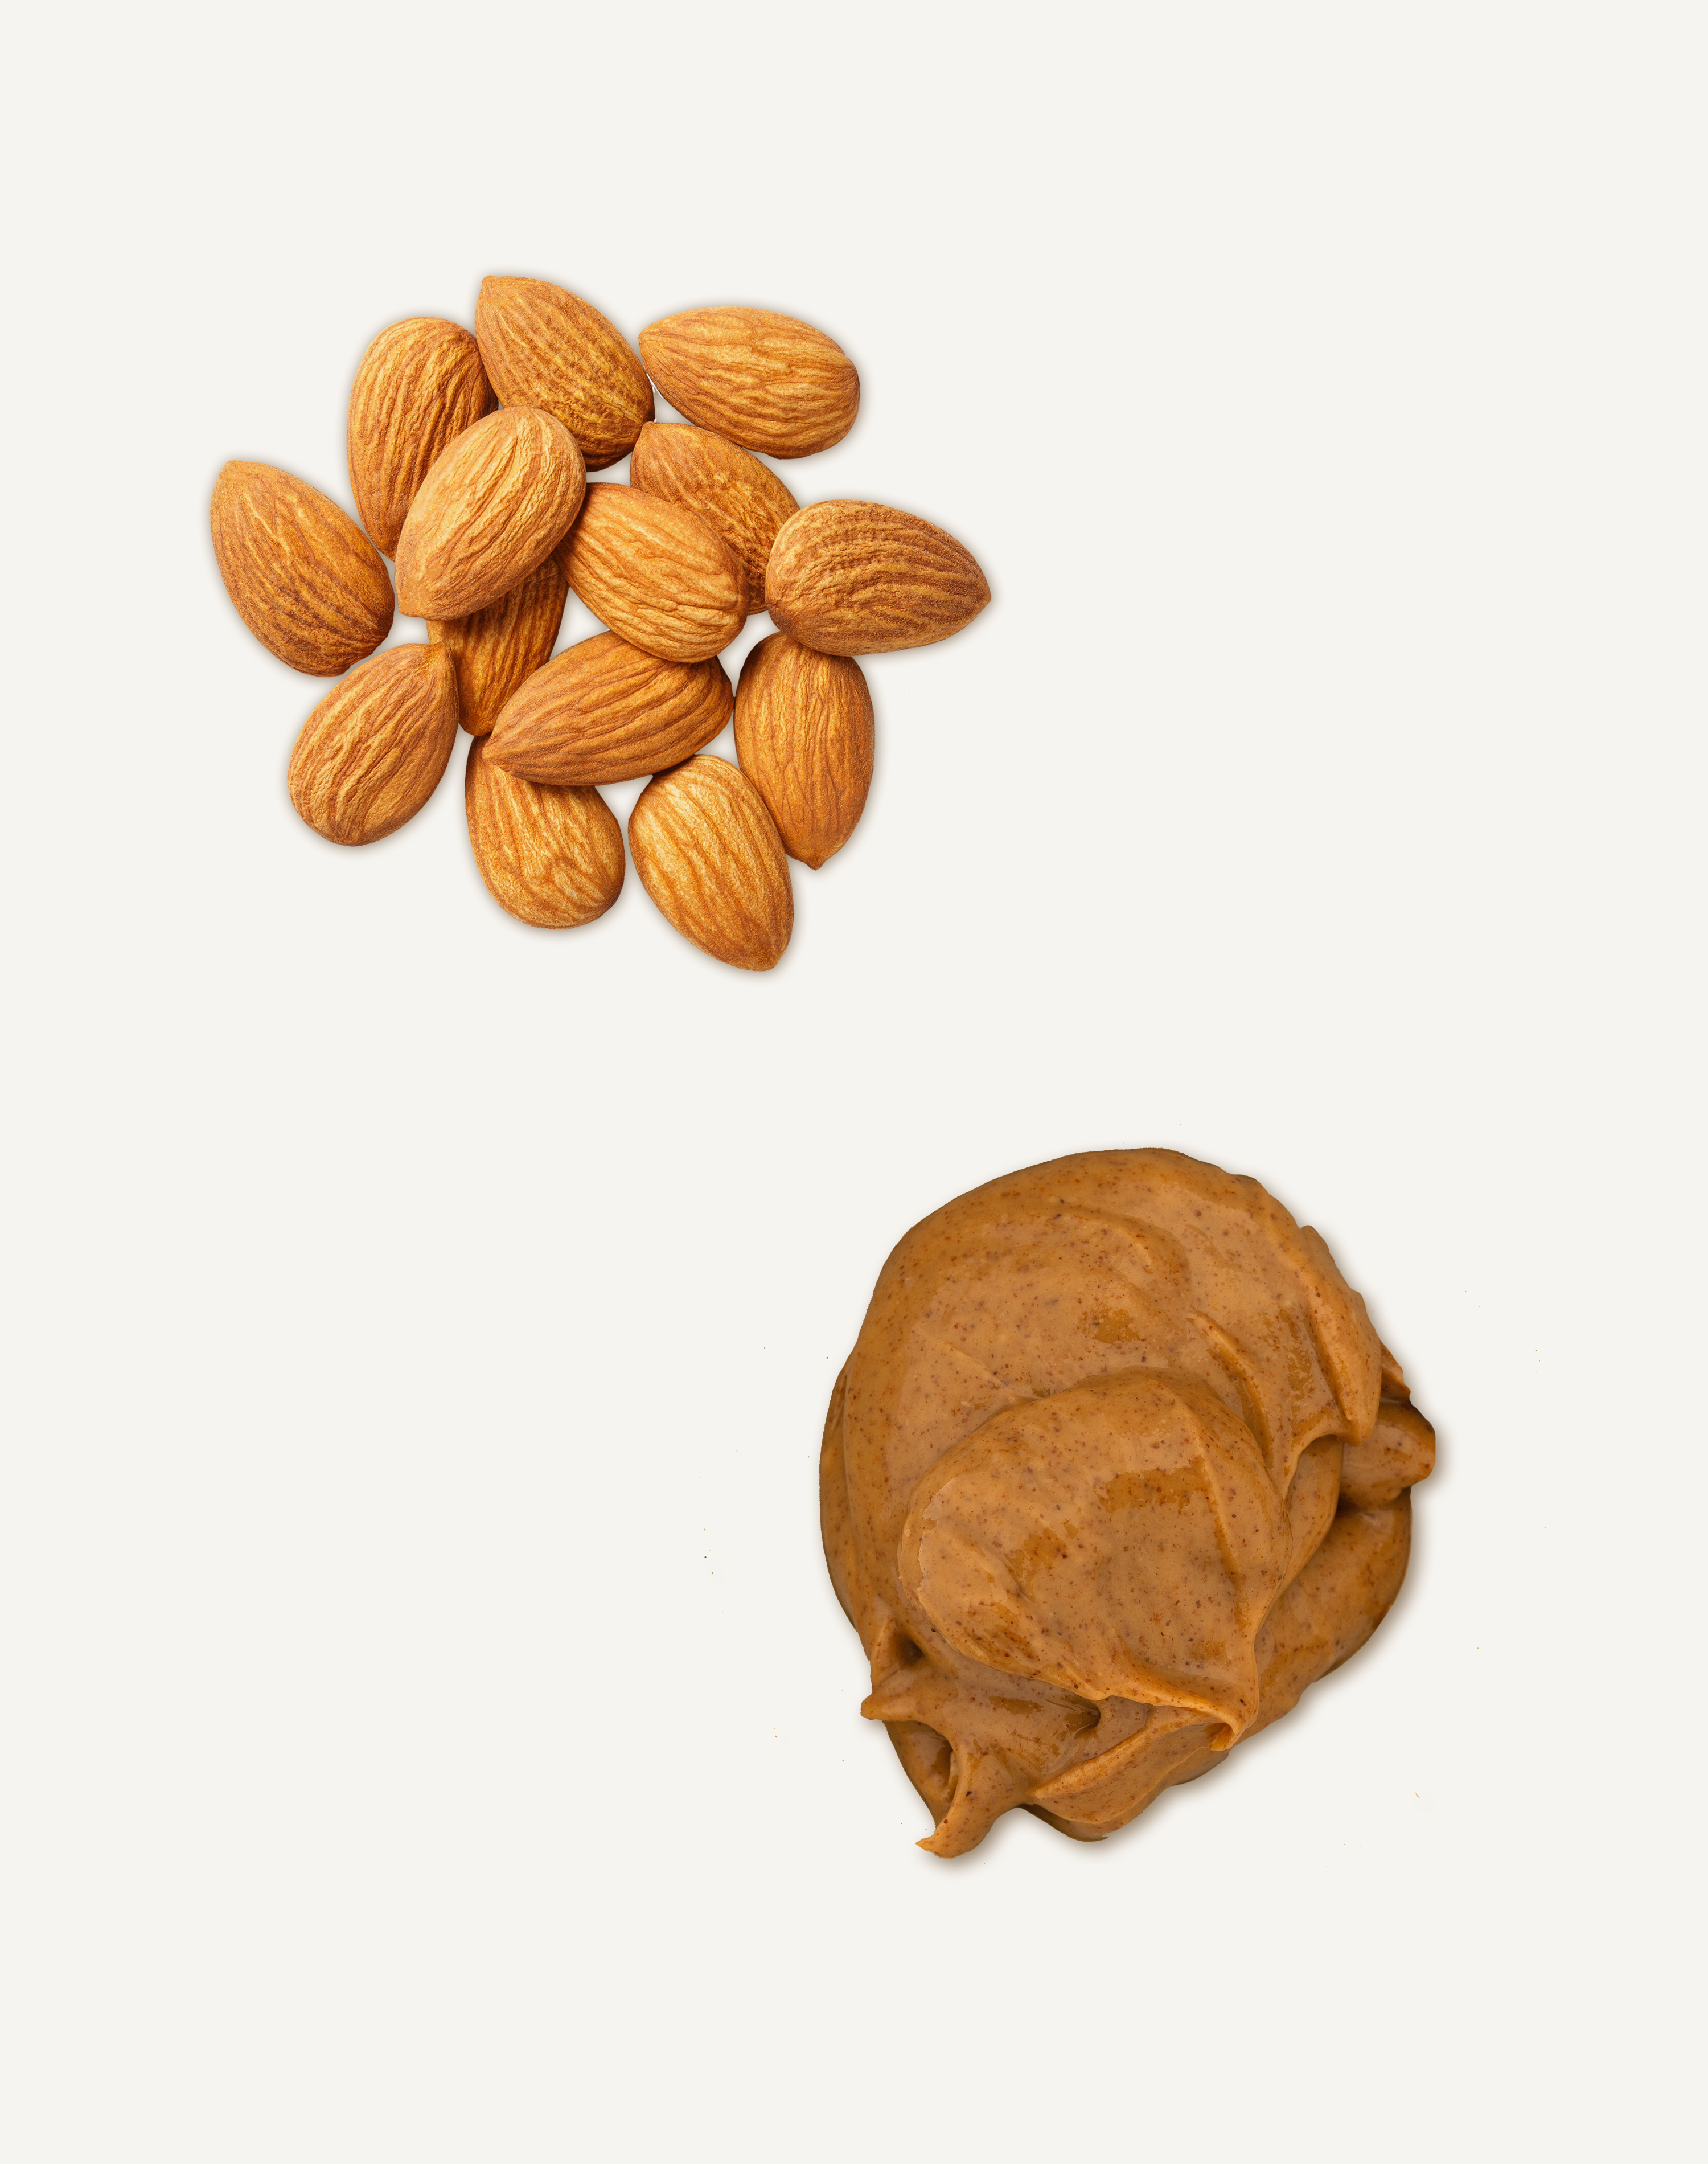 Fuelled Protein Bar Ingredient Almond Butter and Almonds